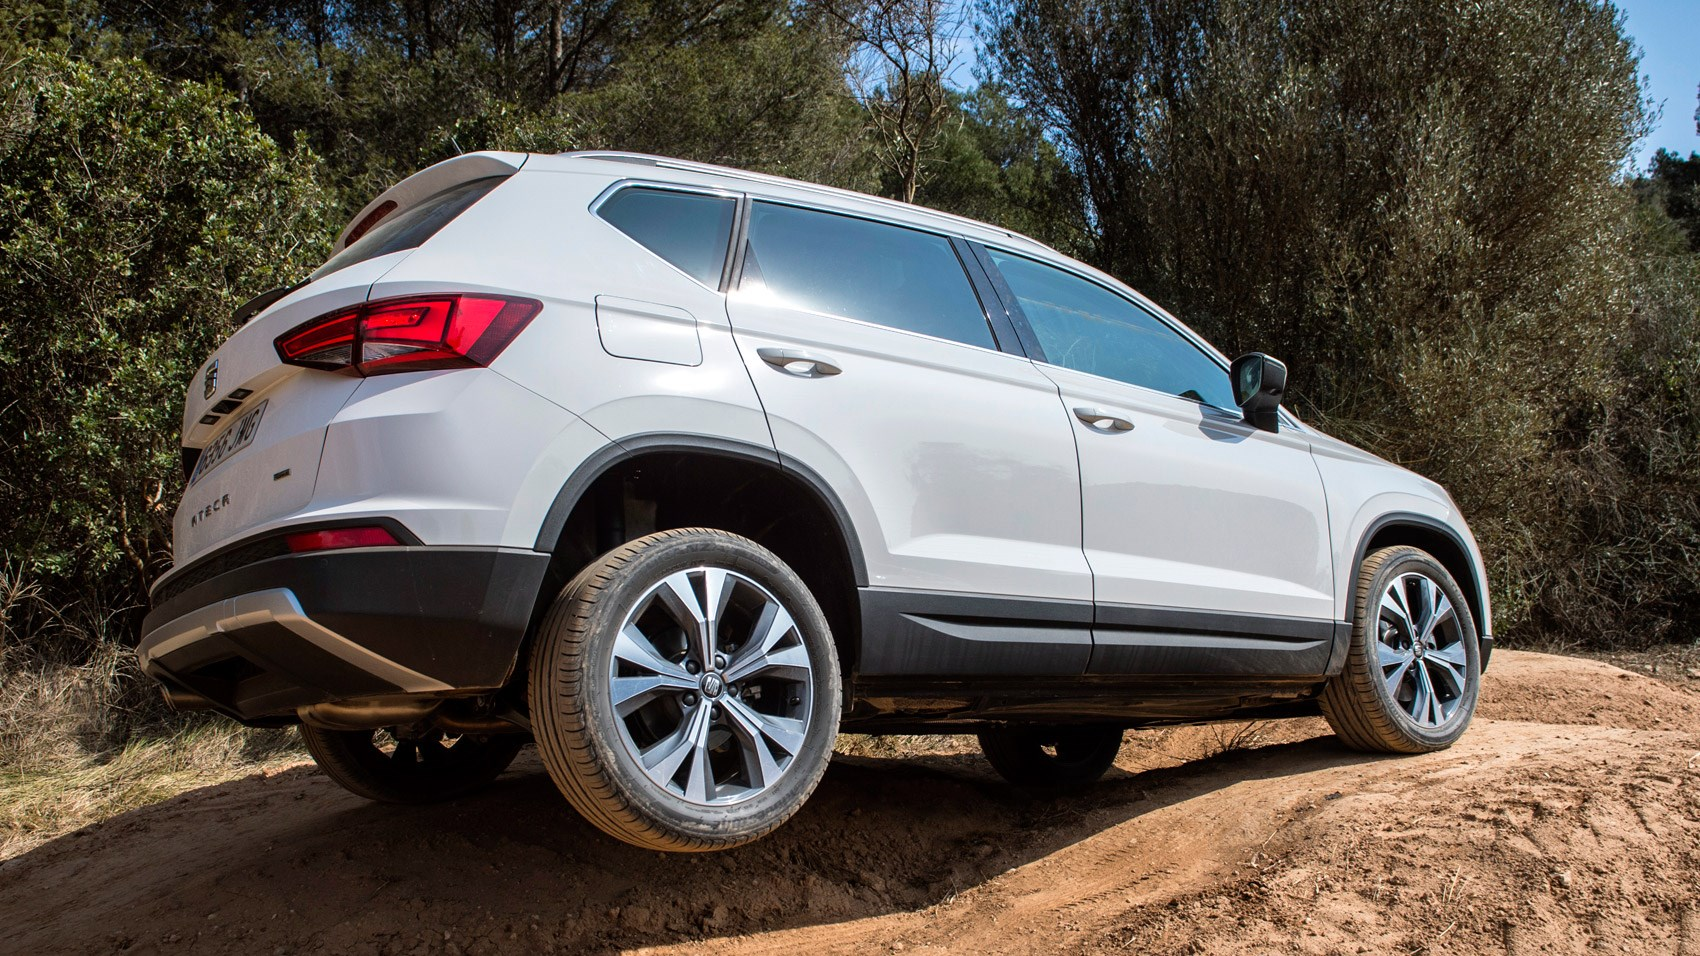 Seat Ateca 2.0 TDI 150 4Drive (2016) review | CAR Magazine